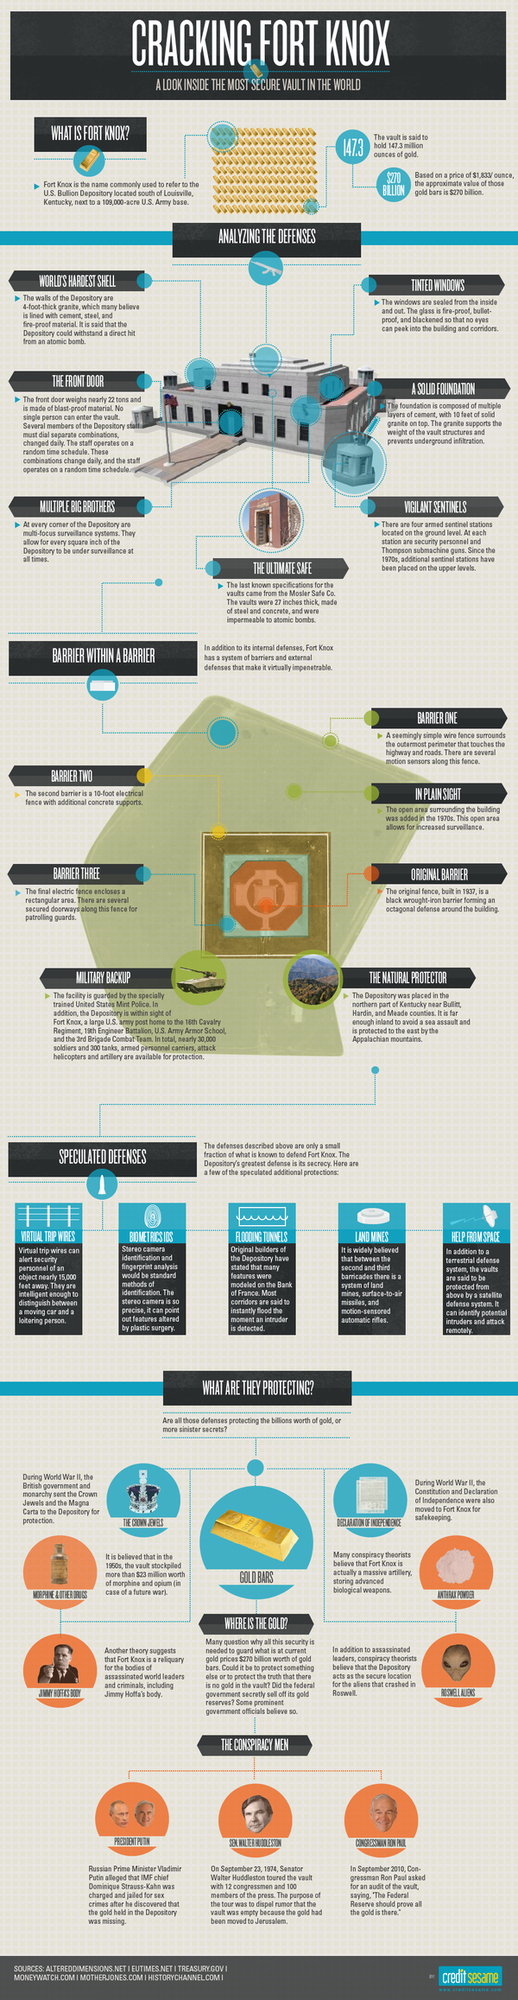 Fort Knox At A Glance [Infographic]